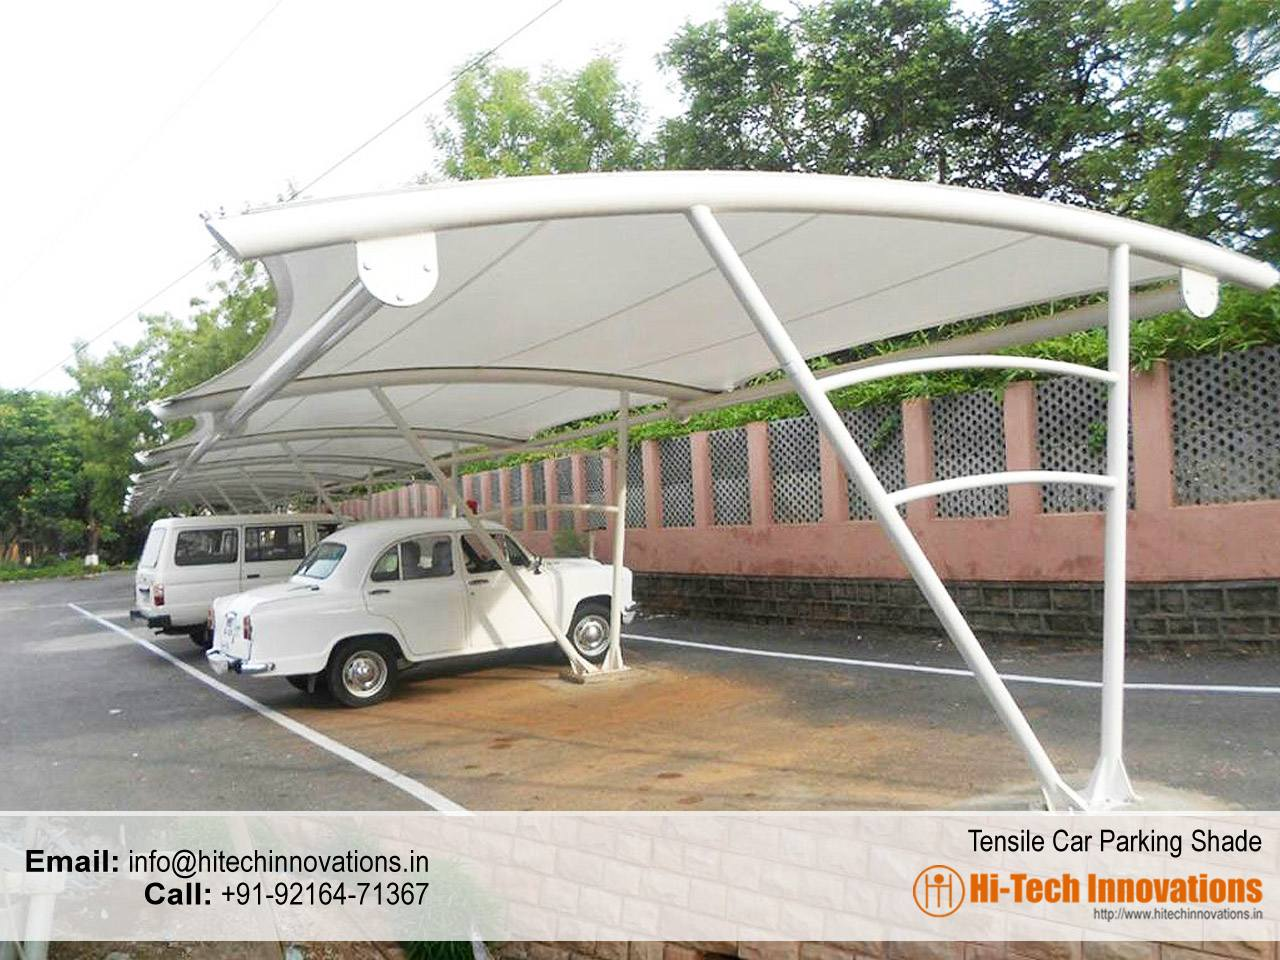 Tensile Car Parking Shade in Chandigarh